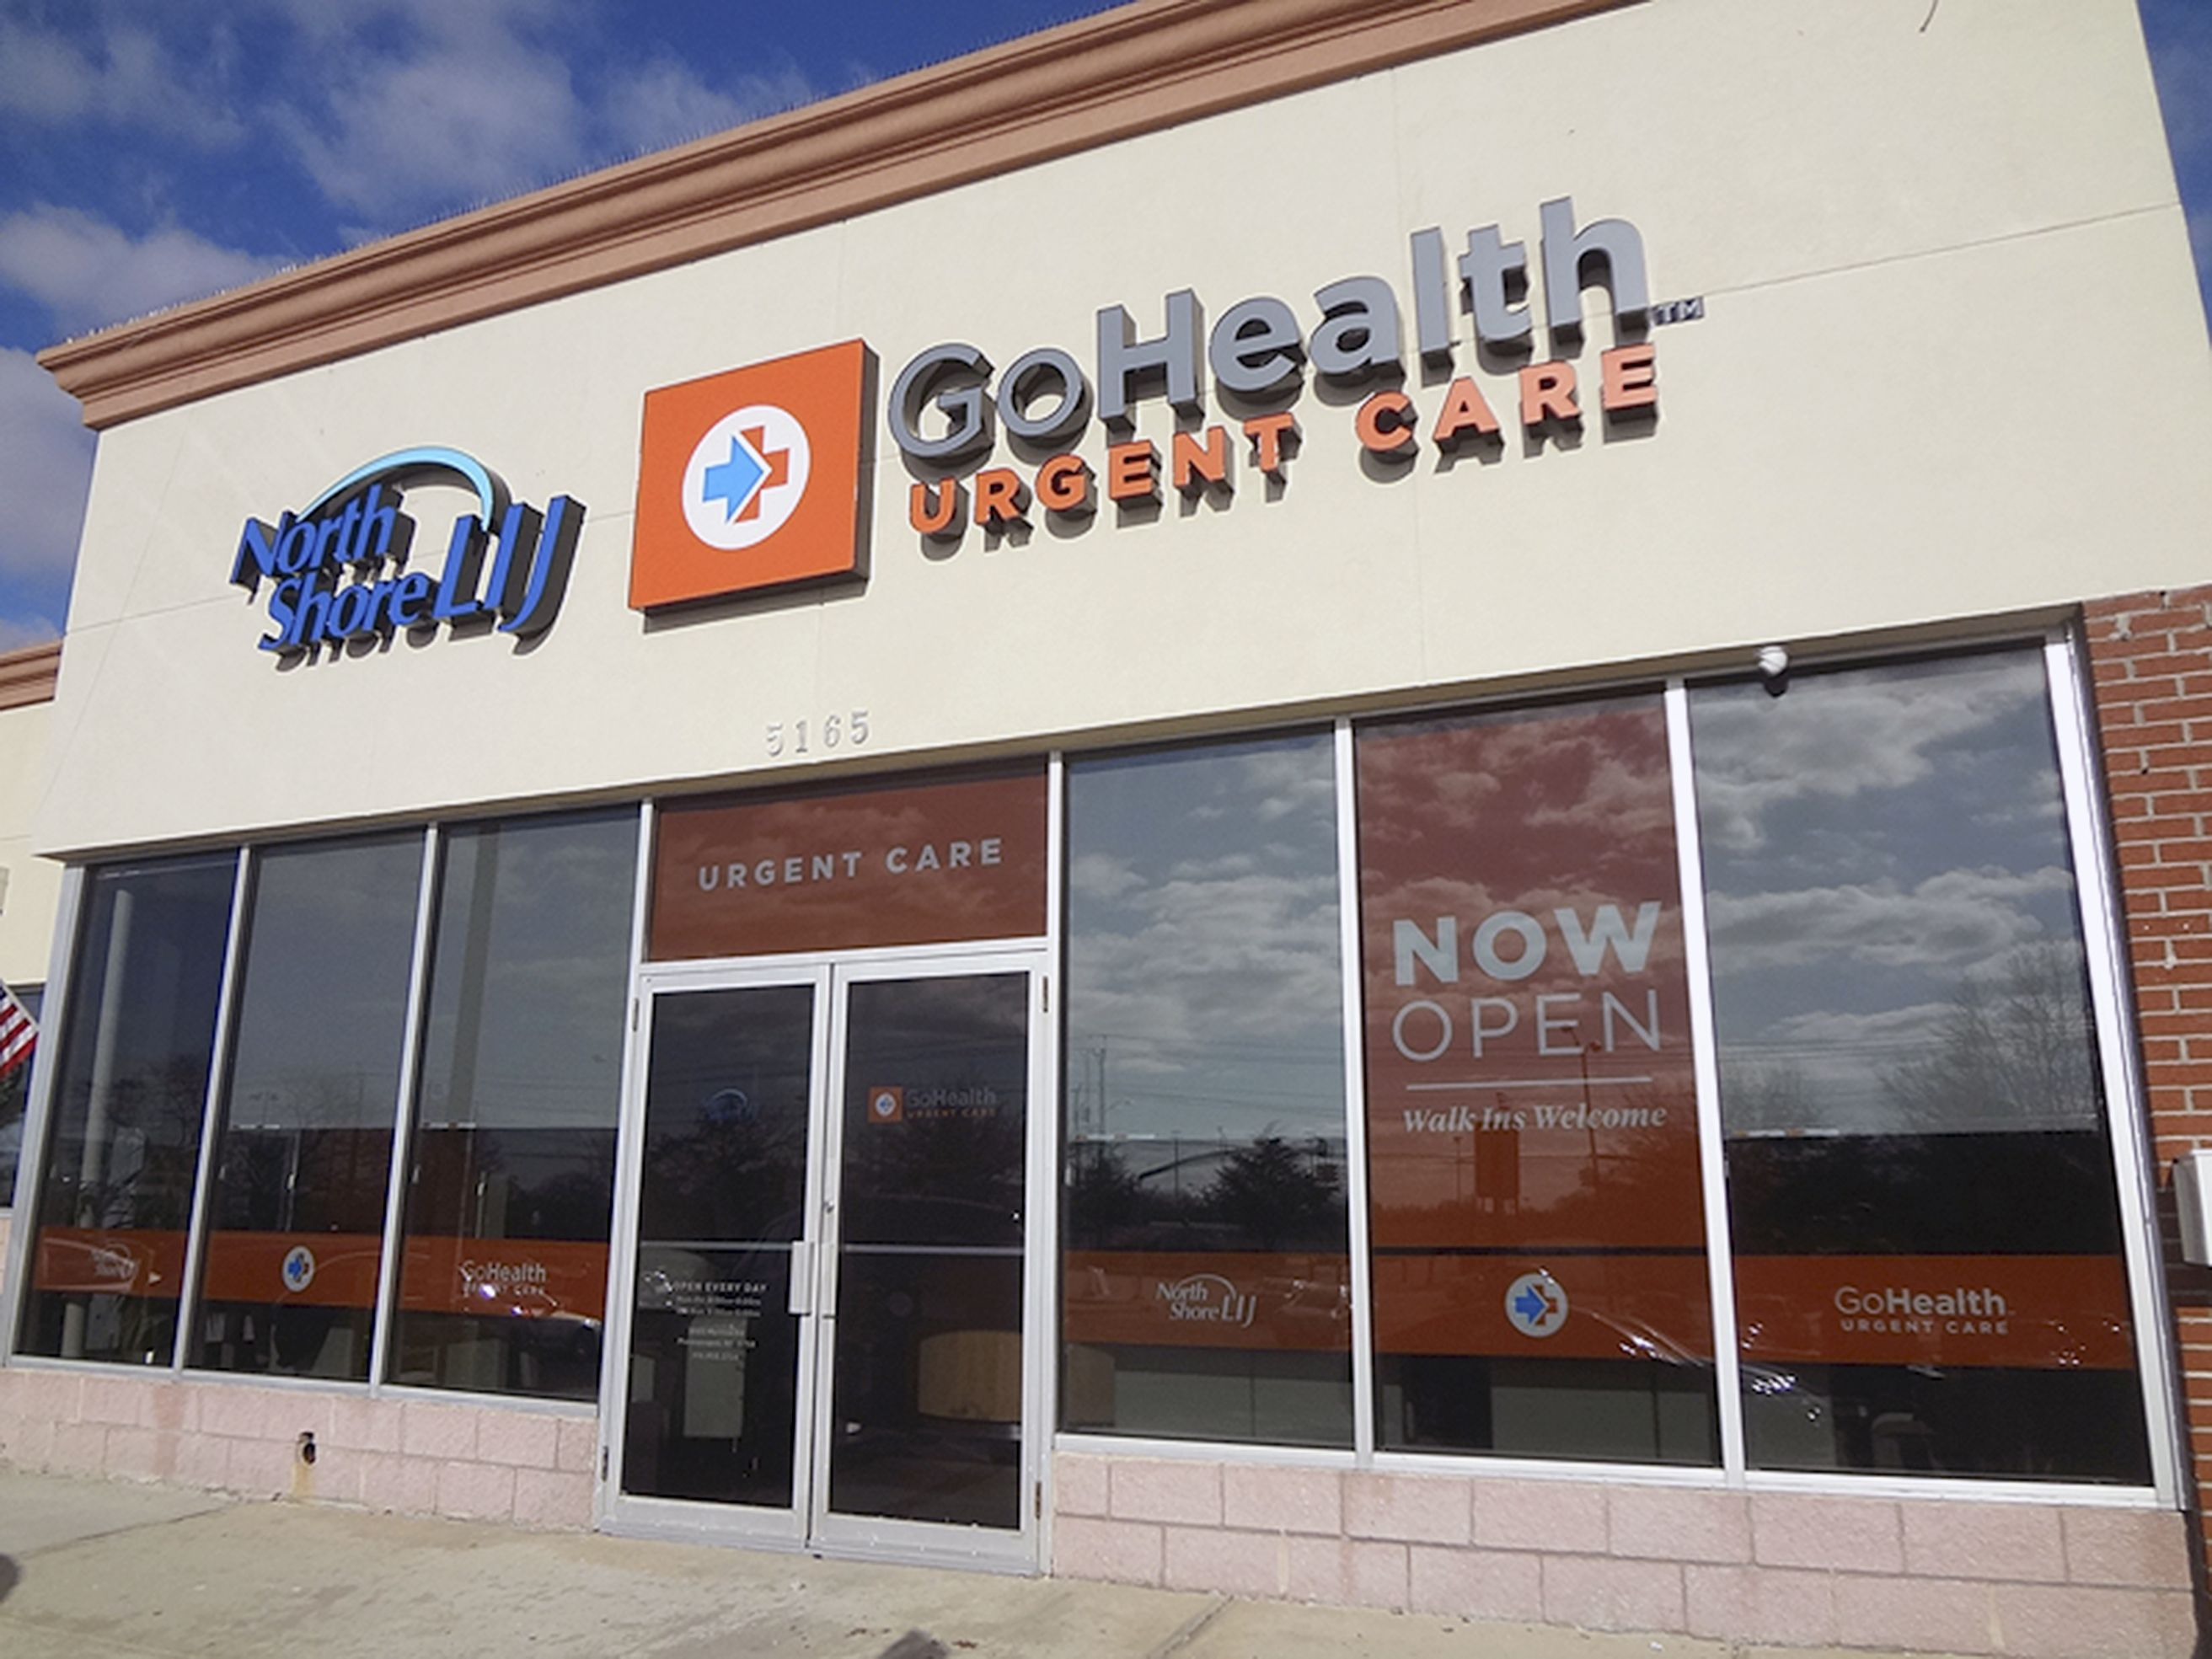 Gohealth holds grand opening urgent care care facility